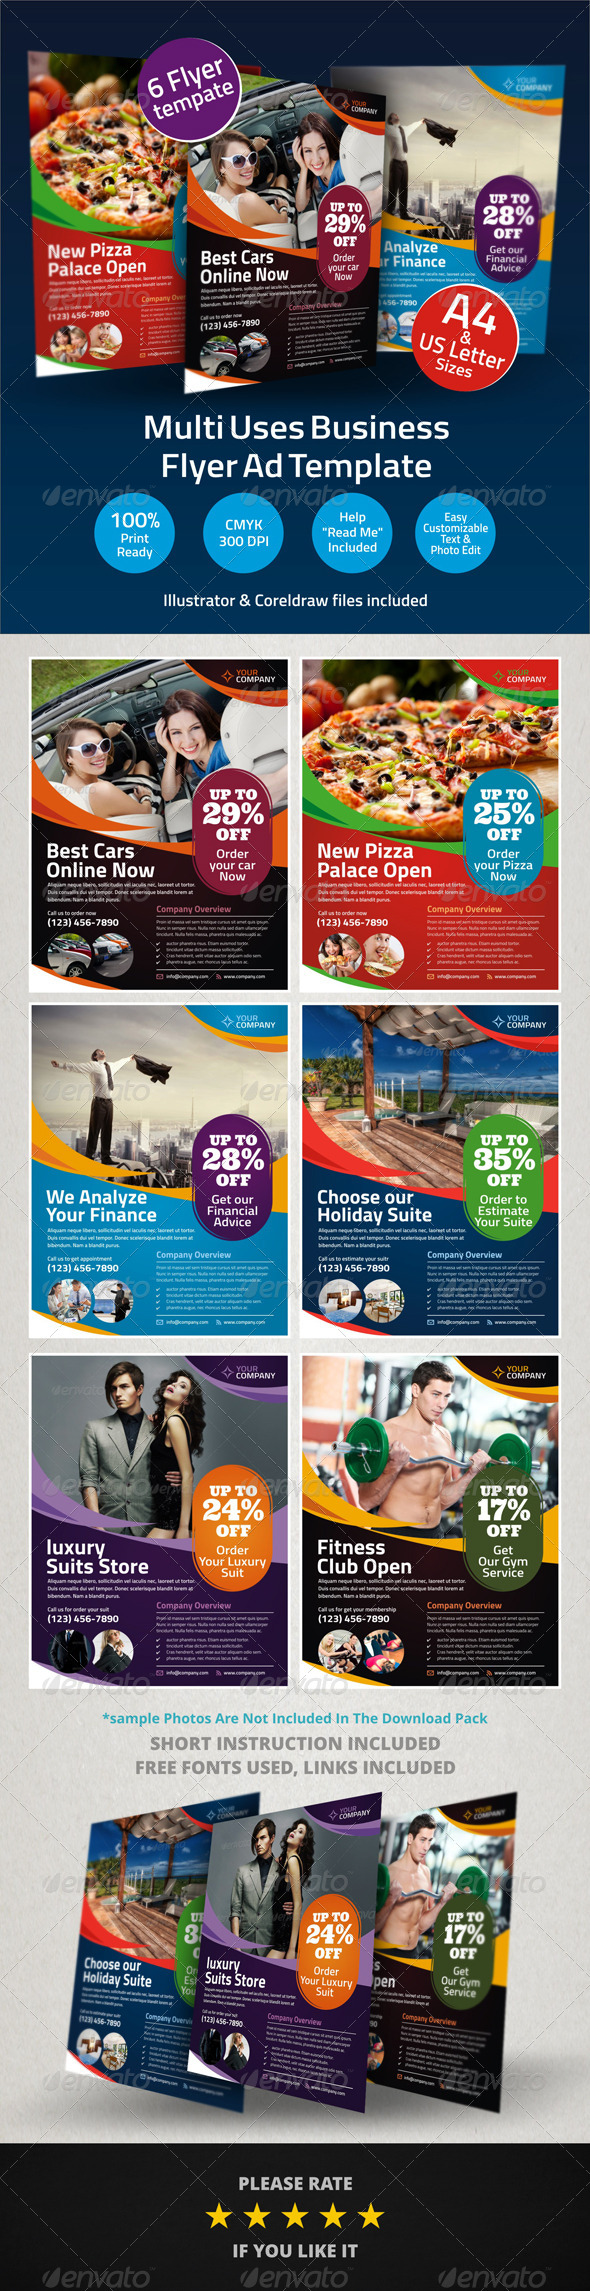 GraphicRiver Multi Uses Business Flyer Ad Template 6037654